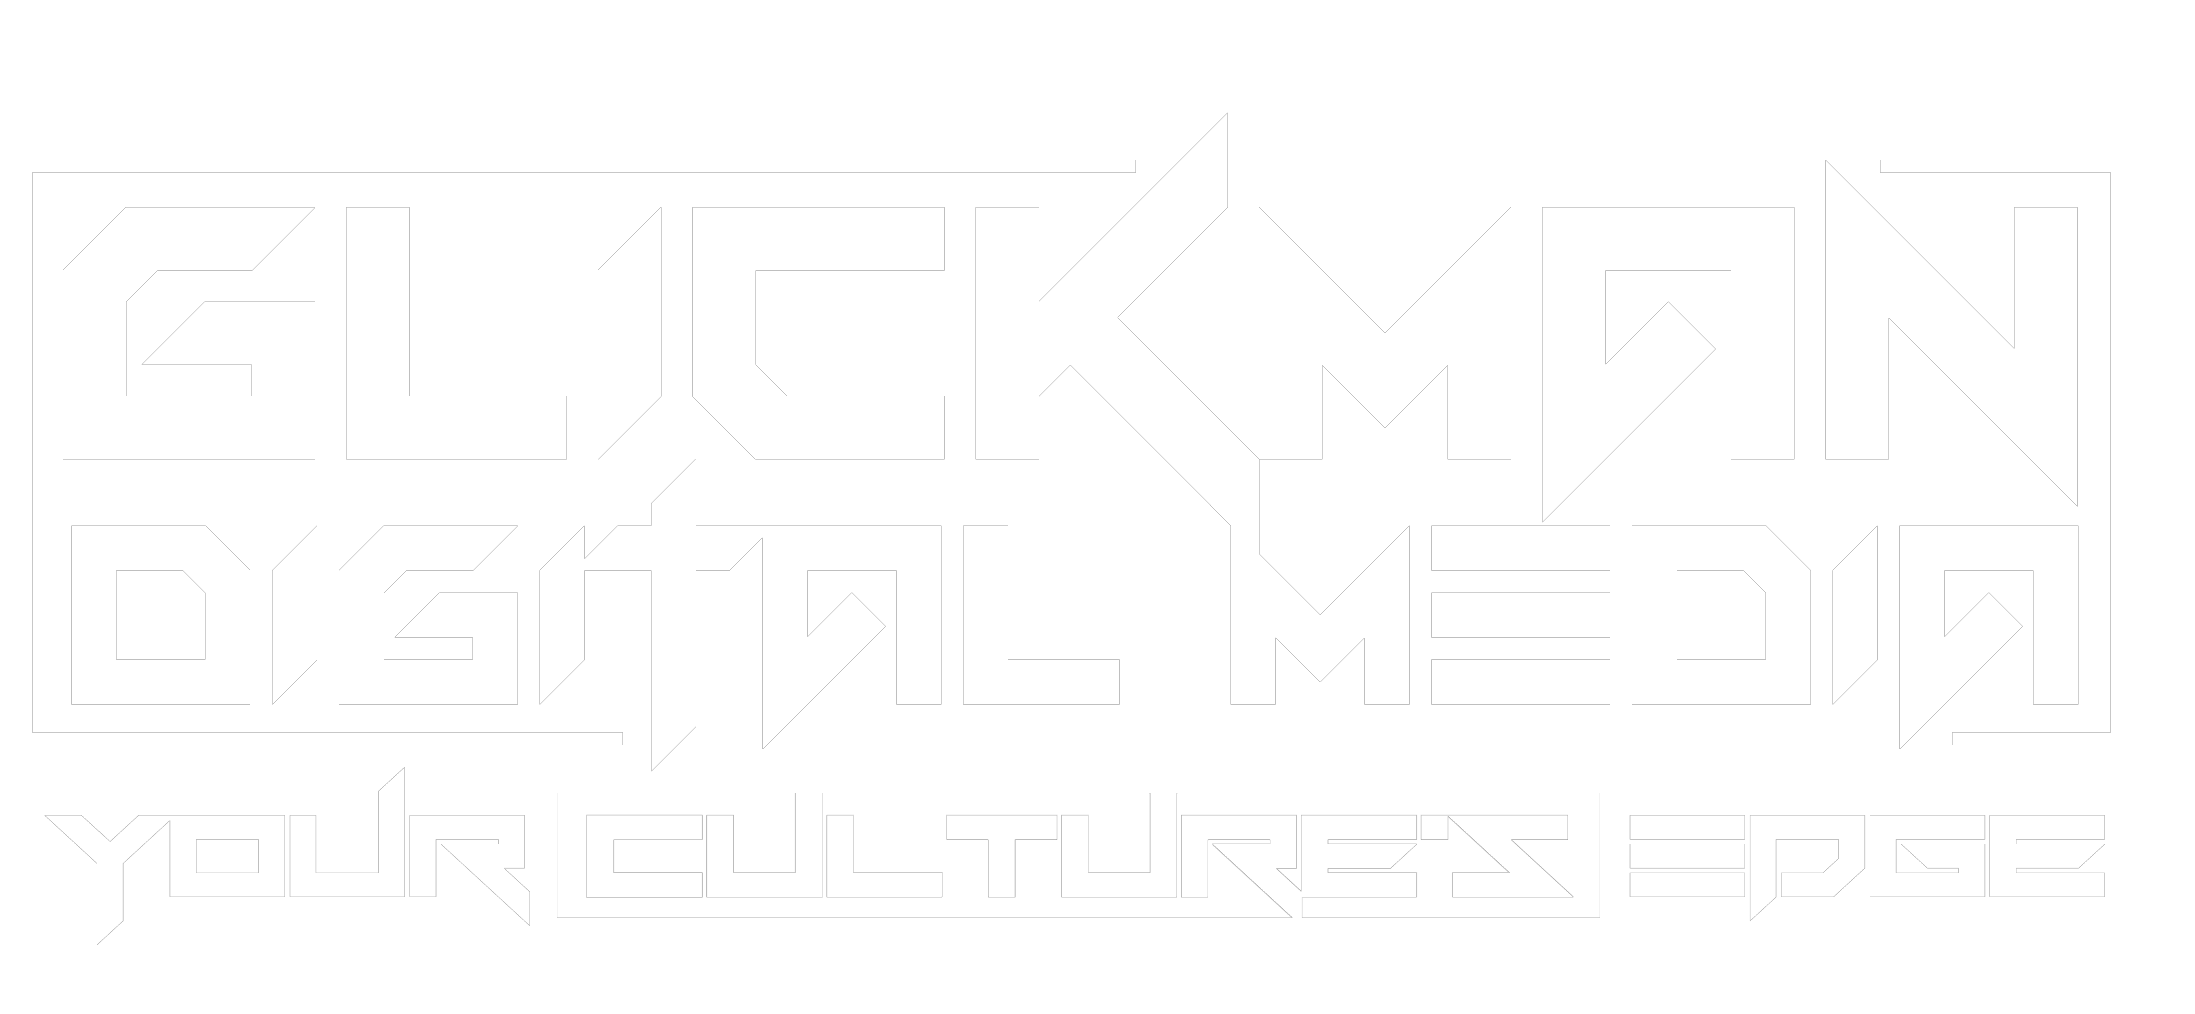 GLICKMAN DIGITAL MEDIA YOUR CULTURE'S EDGE LOGO WHITE.png